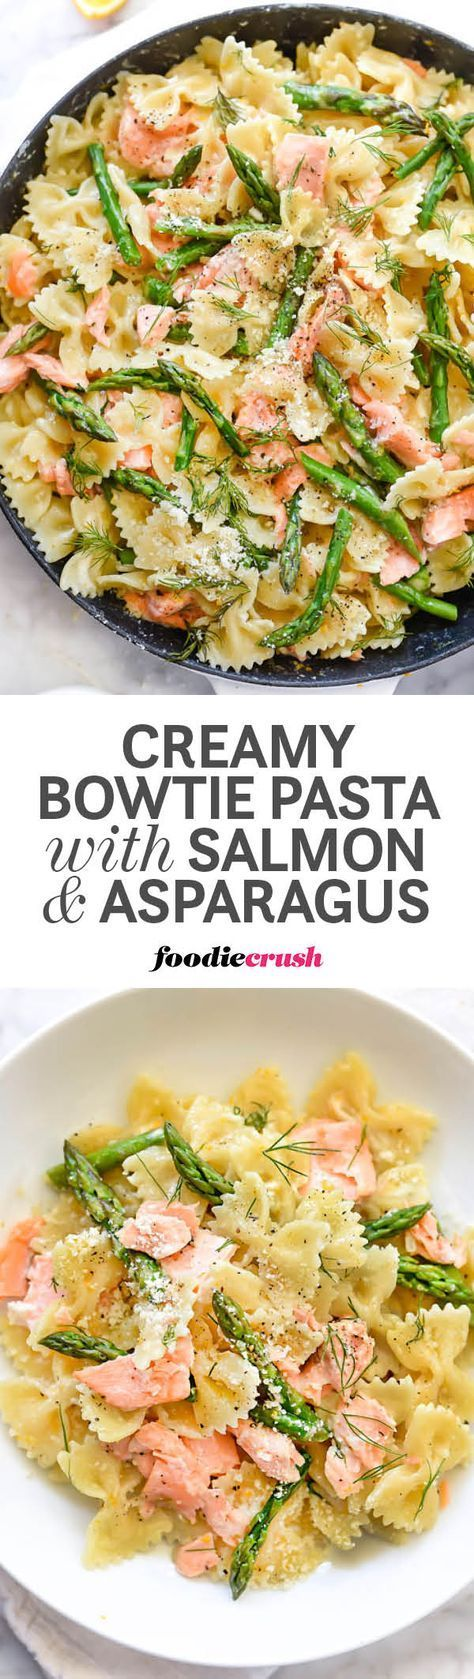 Leftover salmon gets a recipe upgrade with bowtie pasta, fresh asparagus, and dill in this super simple Parmesan cream sauce that makes meal prep a breeze | http://foodiecrush.com #pasta #salmon (salmon recipe pasta)